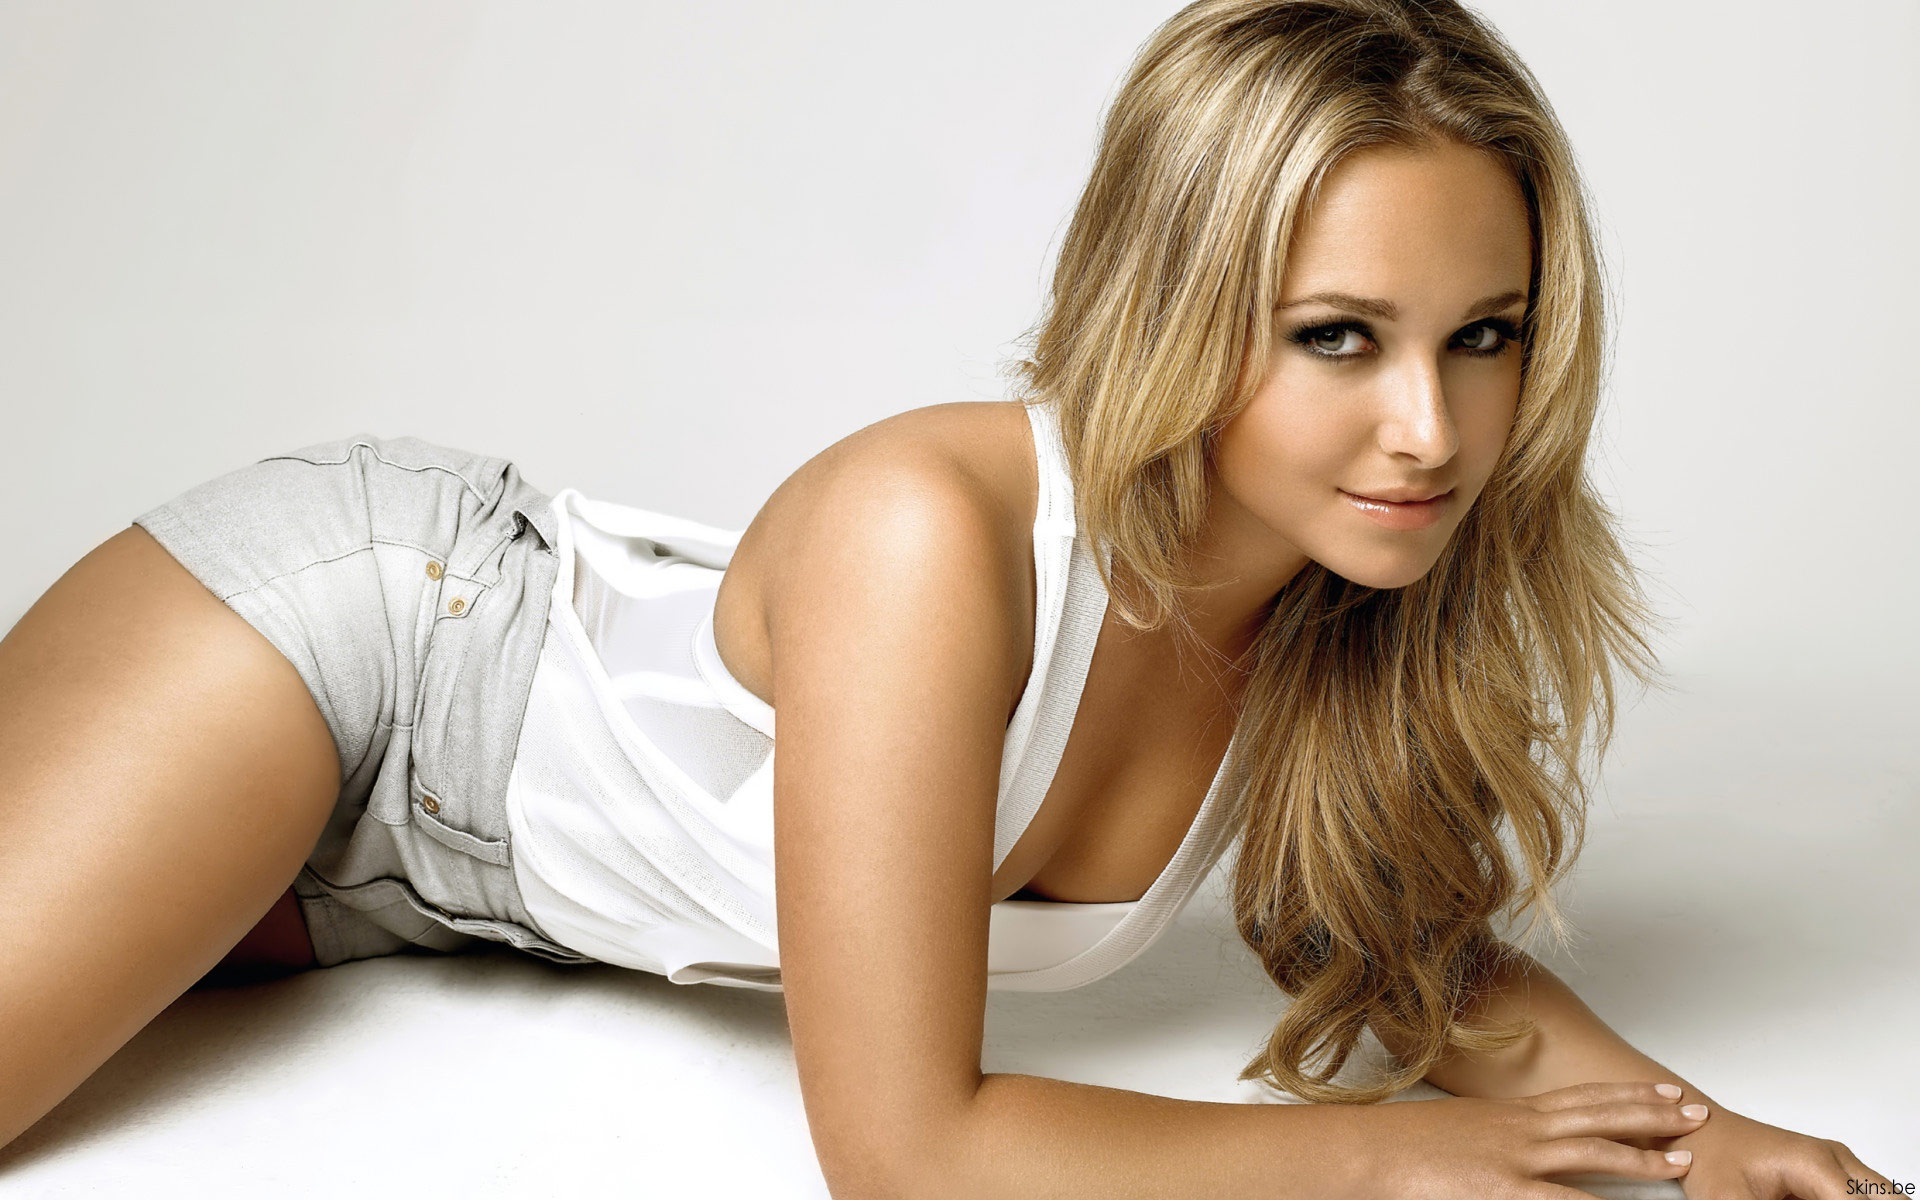 haydenpanettiere wallpapers hd A24